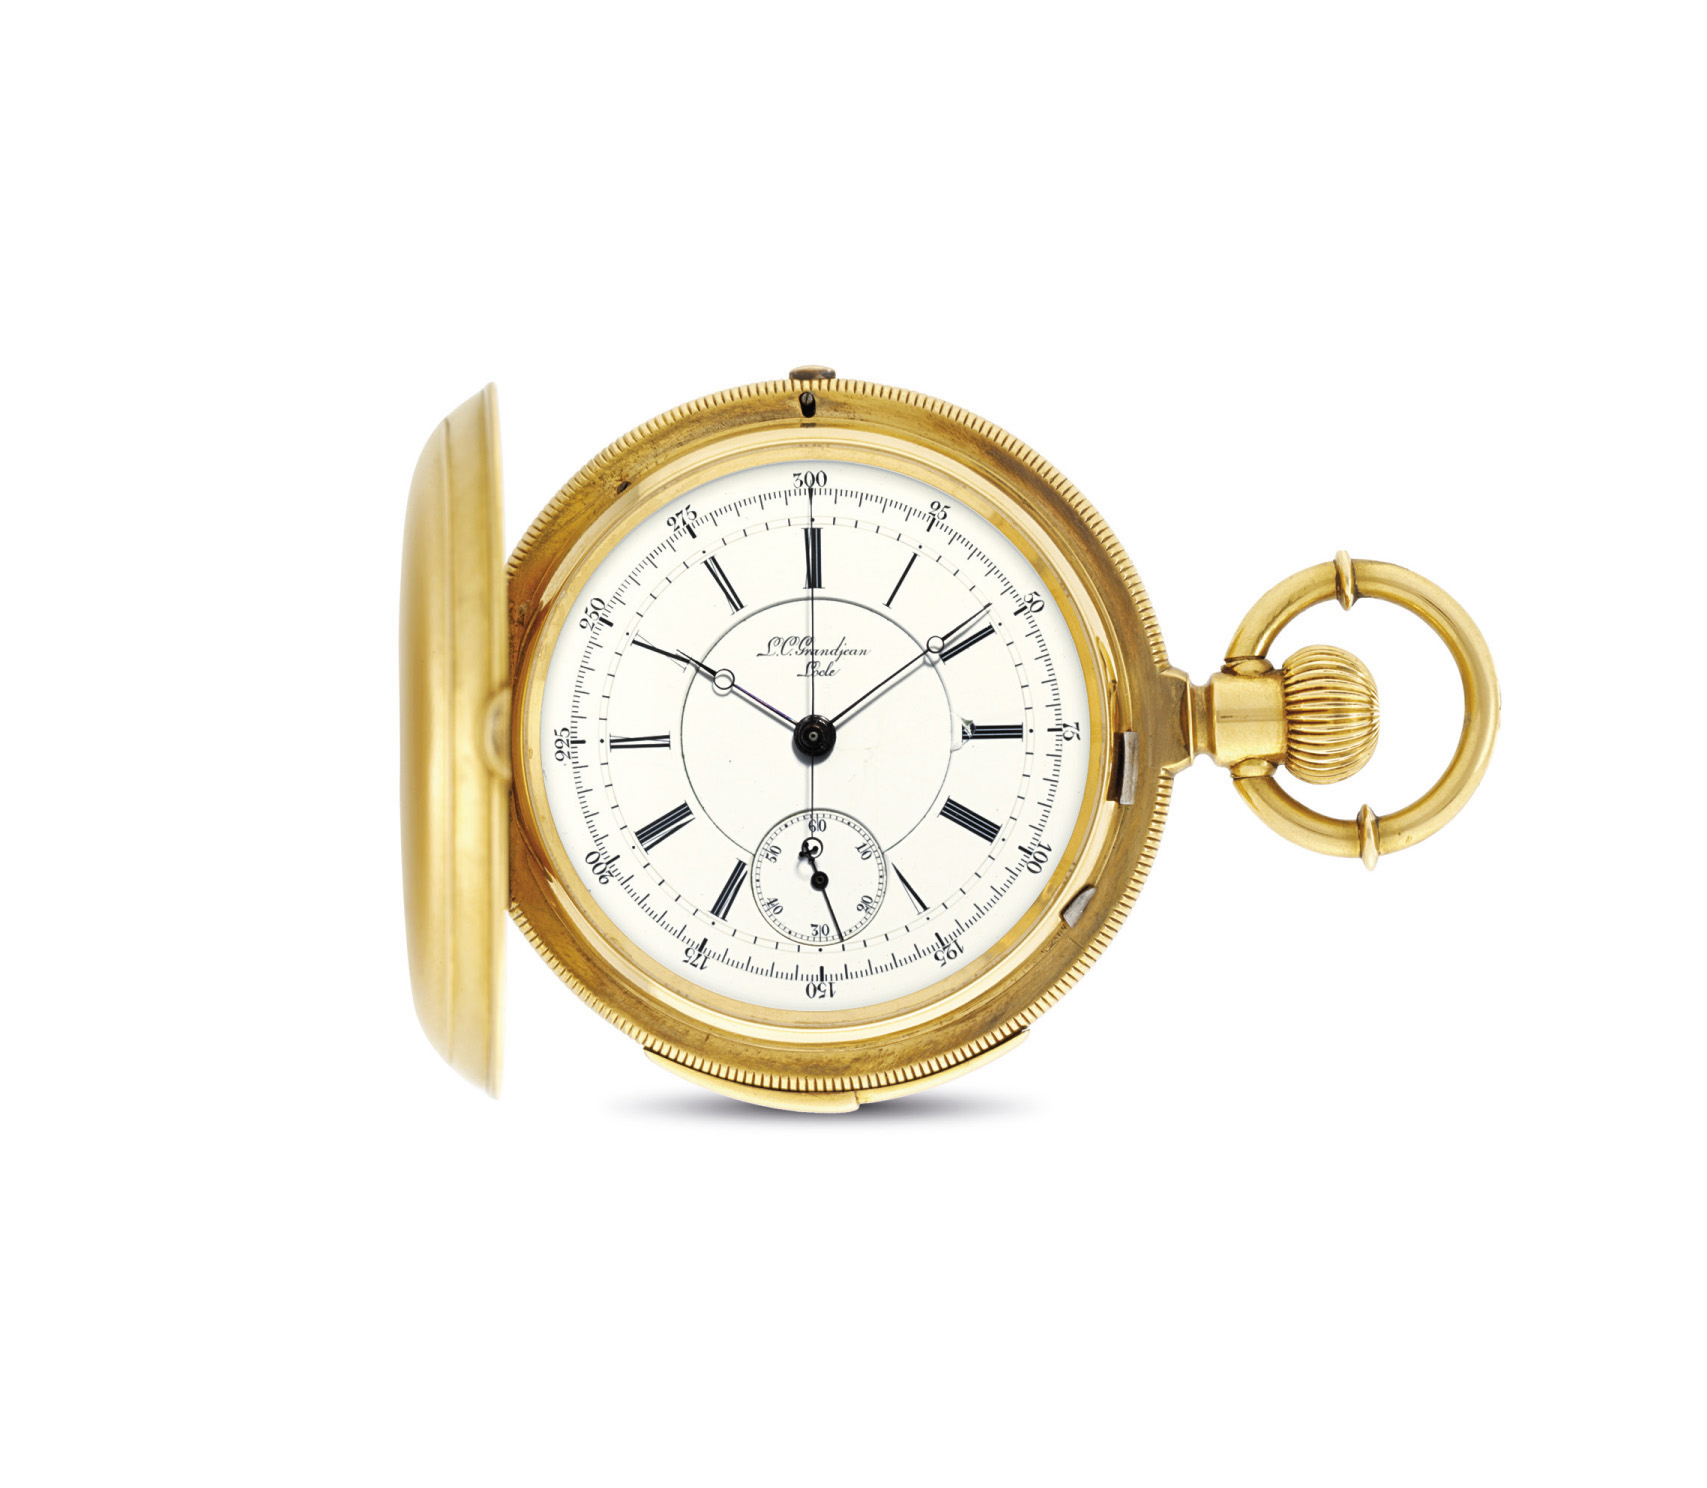 GRANDJEAN. AN 18K GOLD HUNTER CASE MINUTE REPEATING CHRONOGRAPH KEYLESS LEVER WATCH